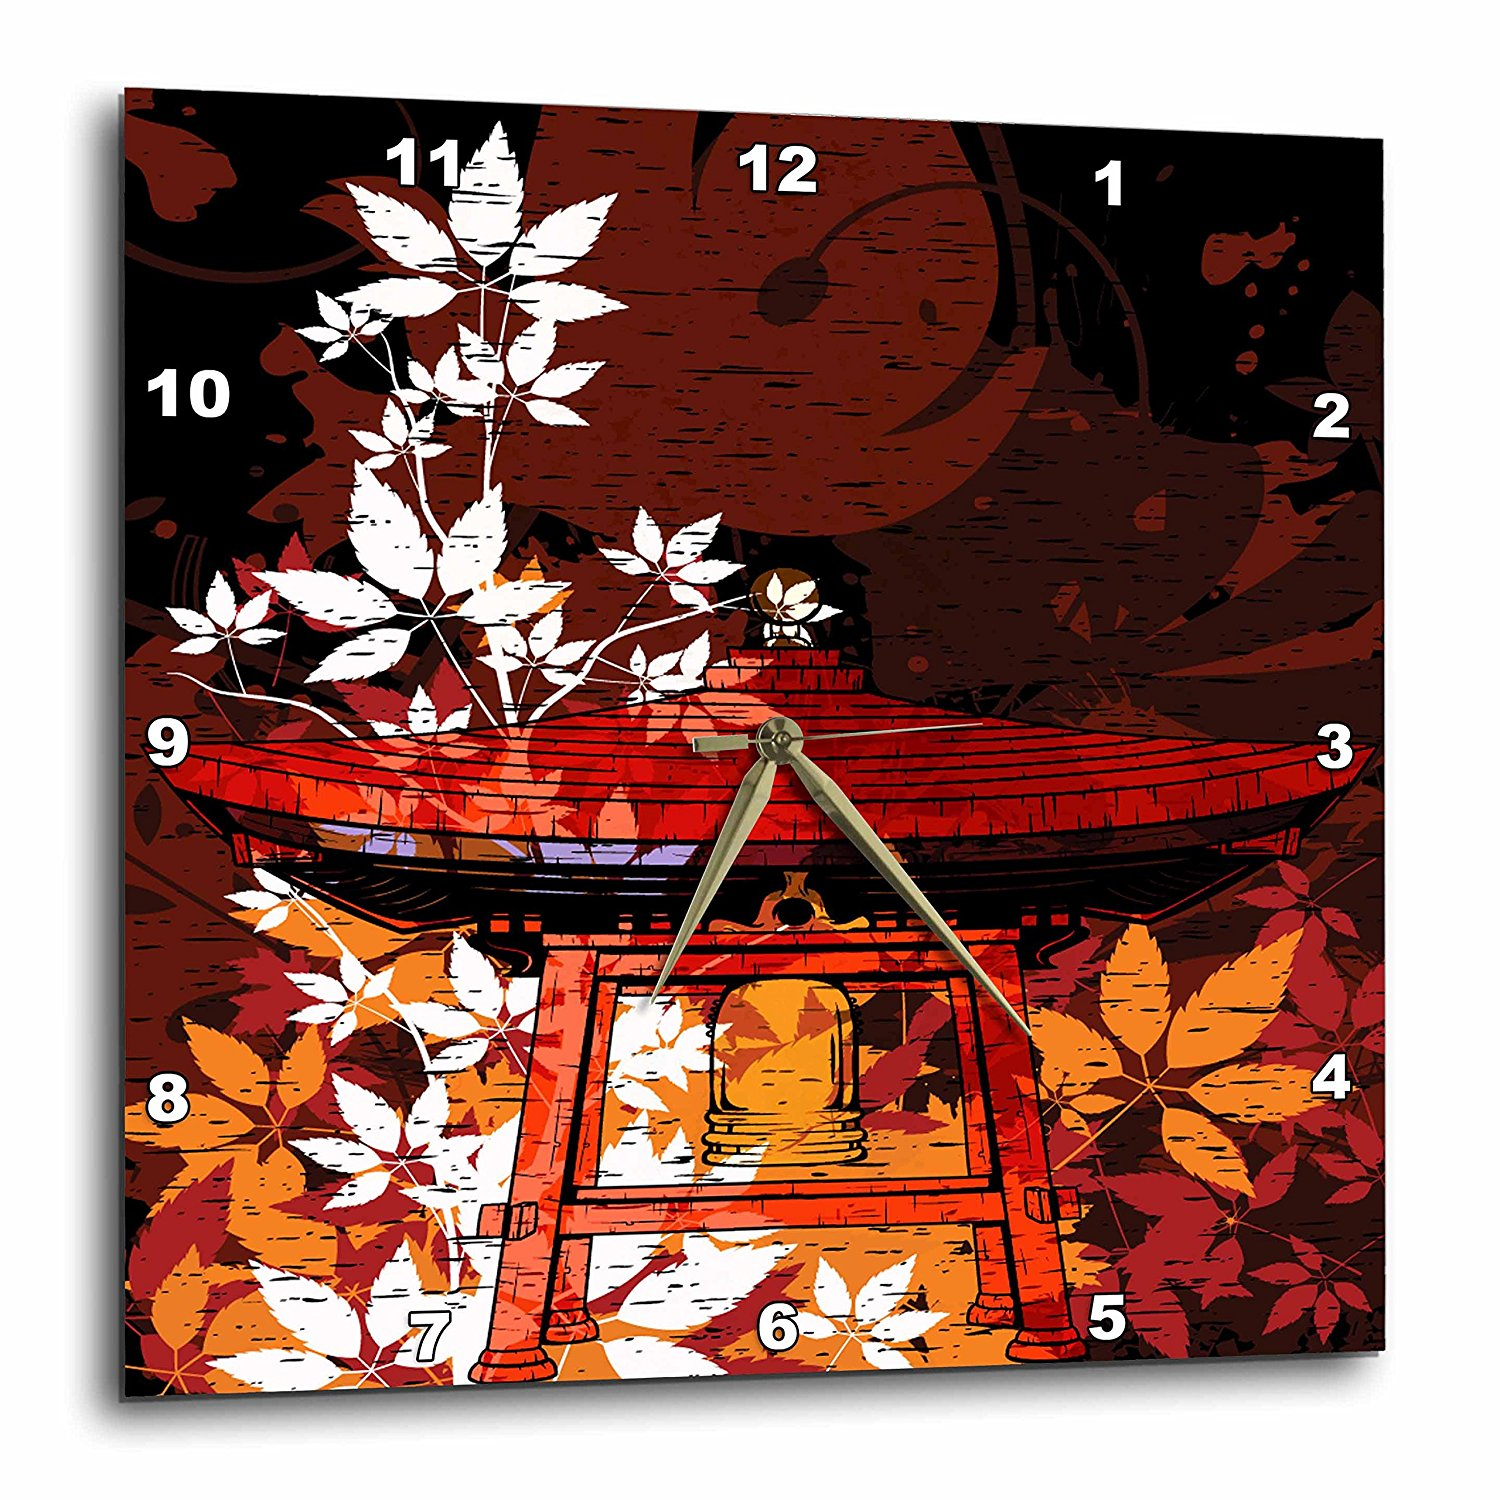 3dRose dpp_116381_2 Pretty Ornate Japanese Bell Gong Decorated with Foliage Asian Oriental Art-Wall Clock, 13 by 13-Inch